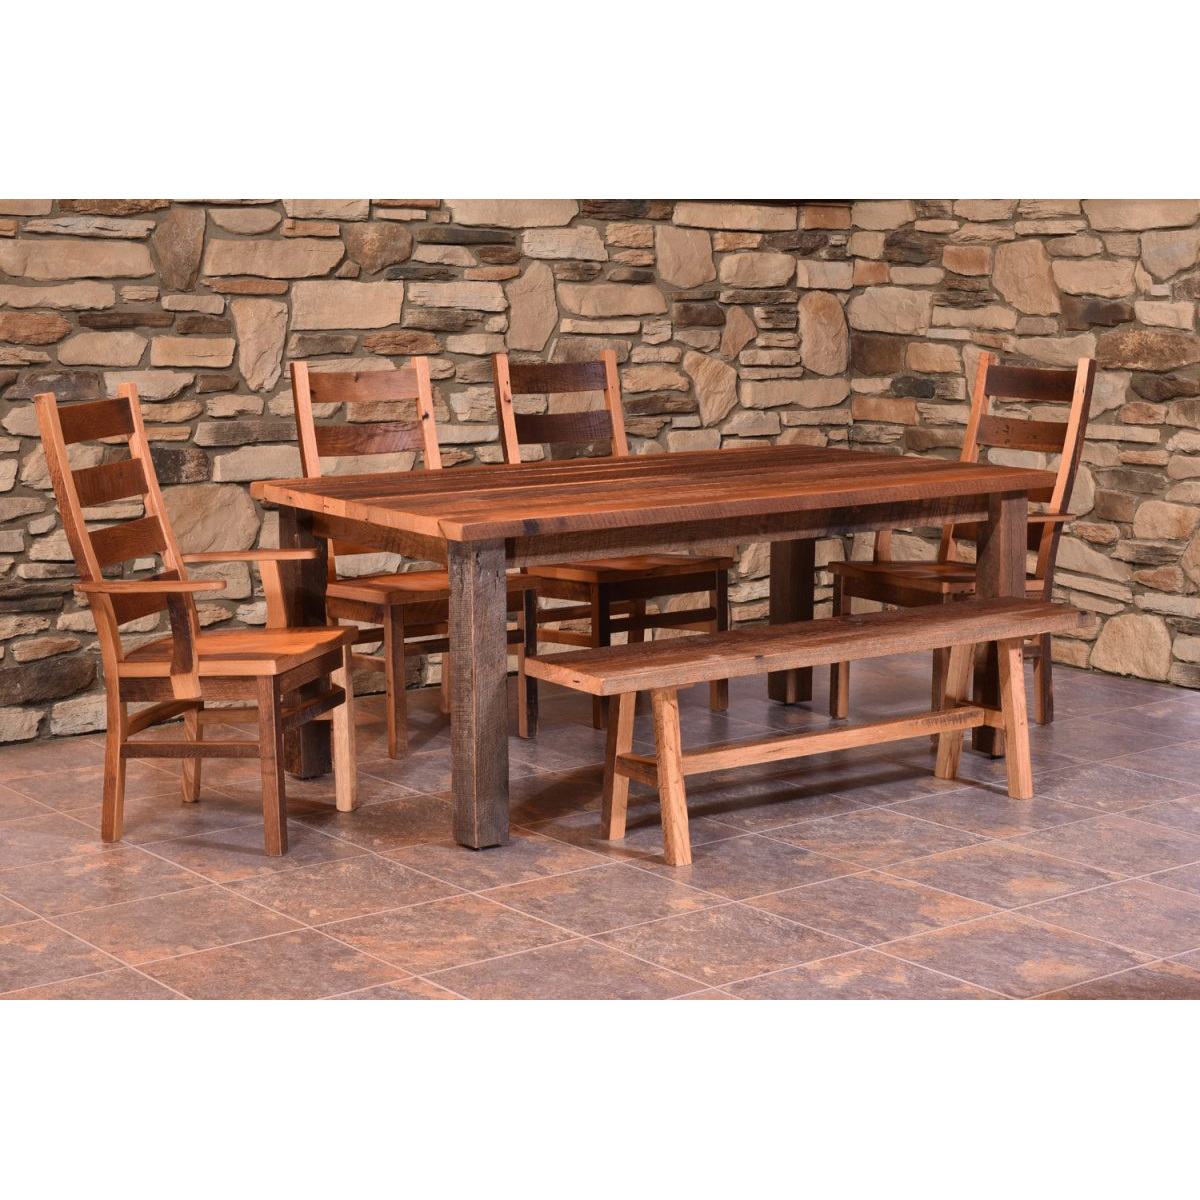 barnwood dining room chairs aluminum stacking patio almanzo table square leg amish crafted